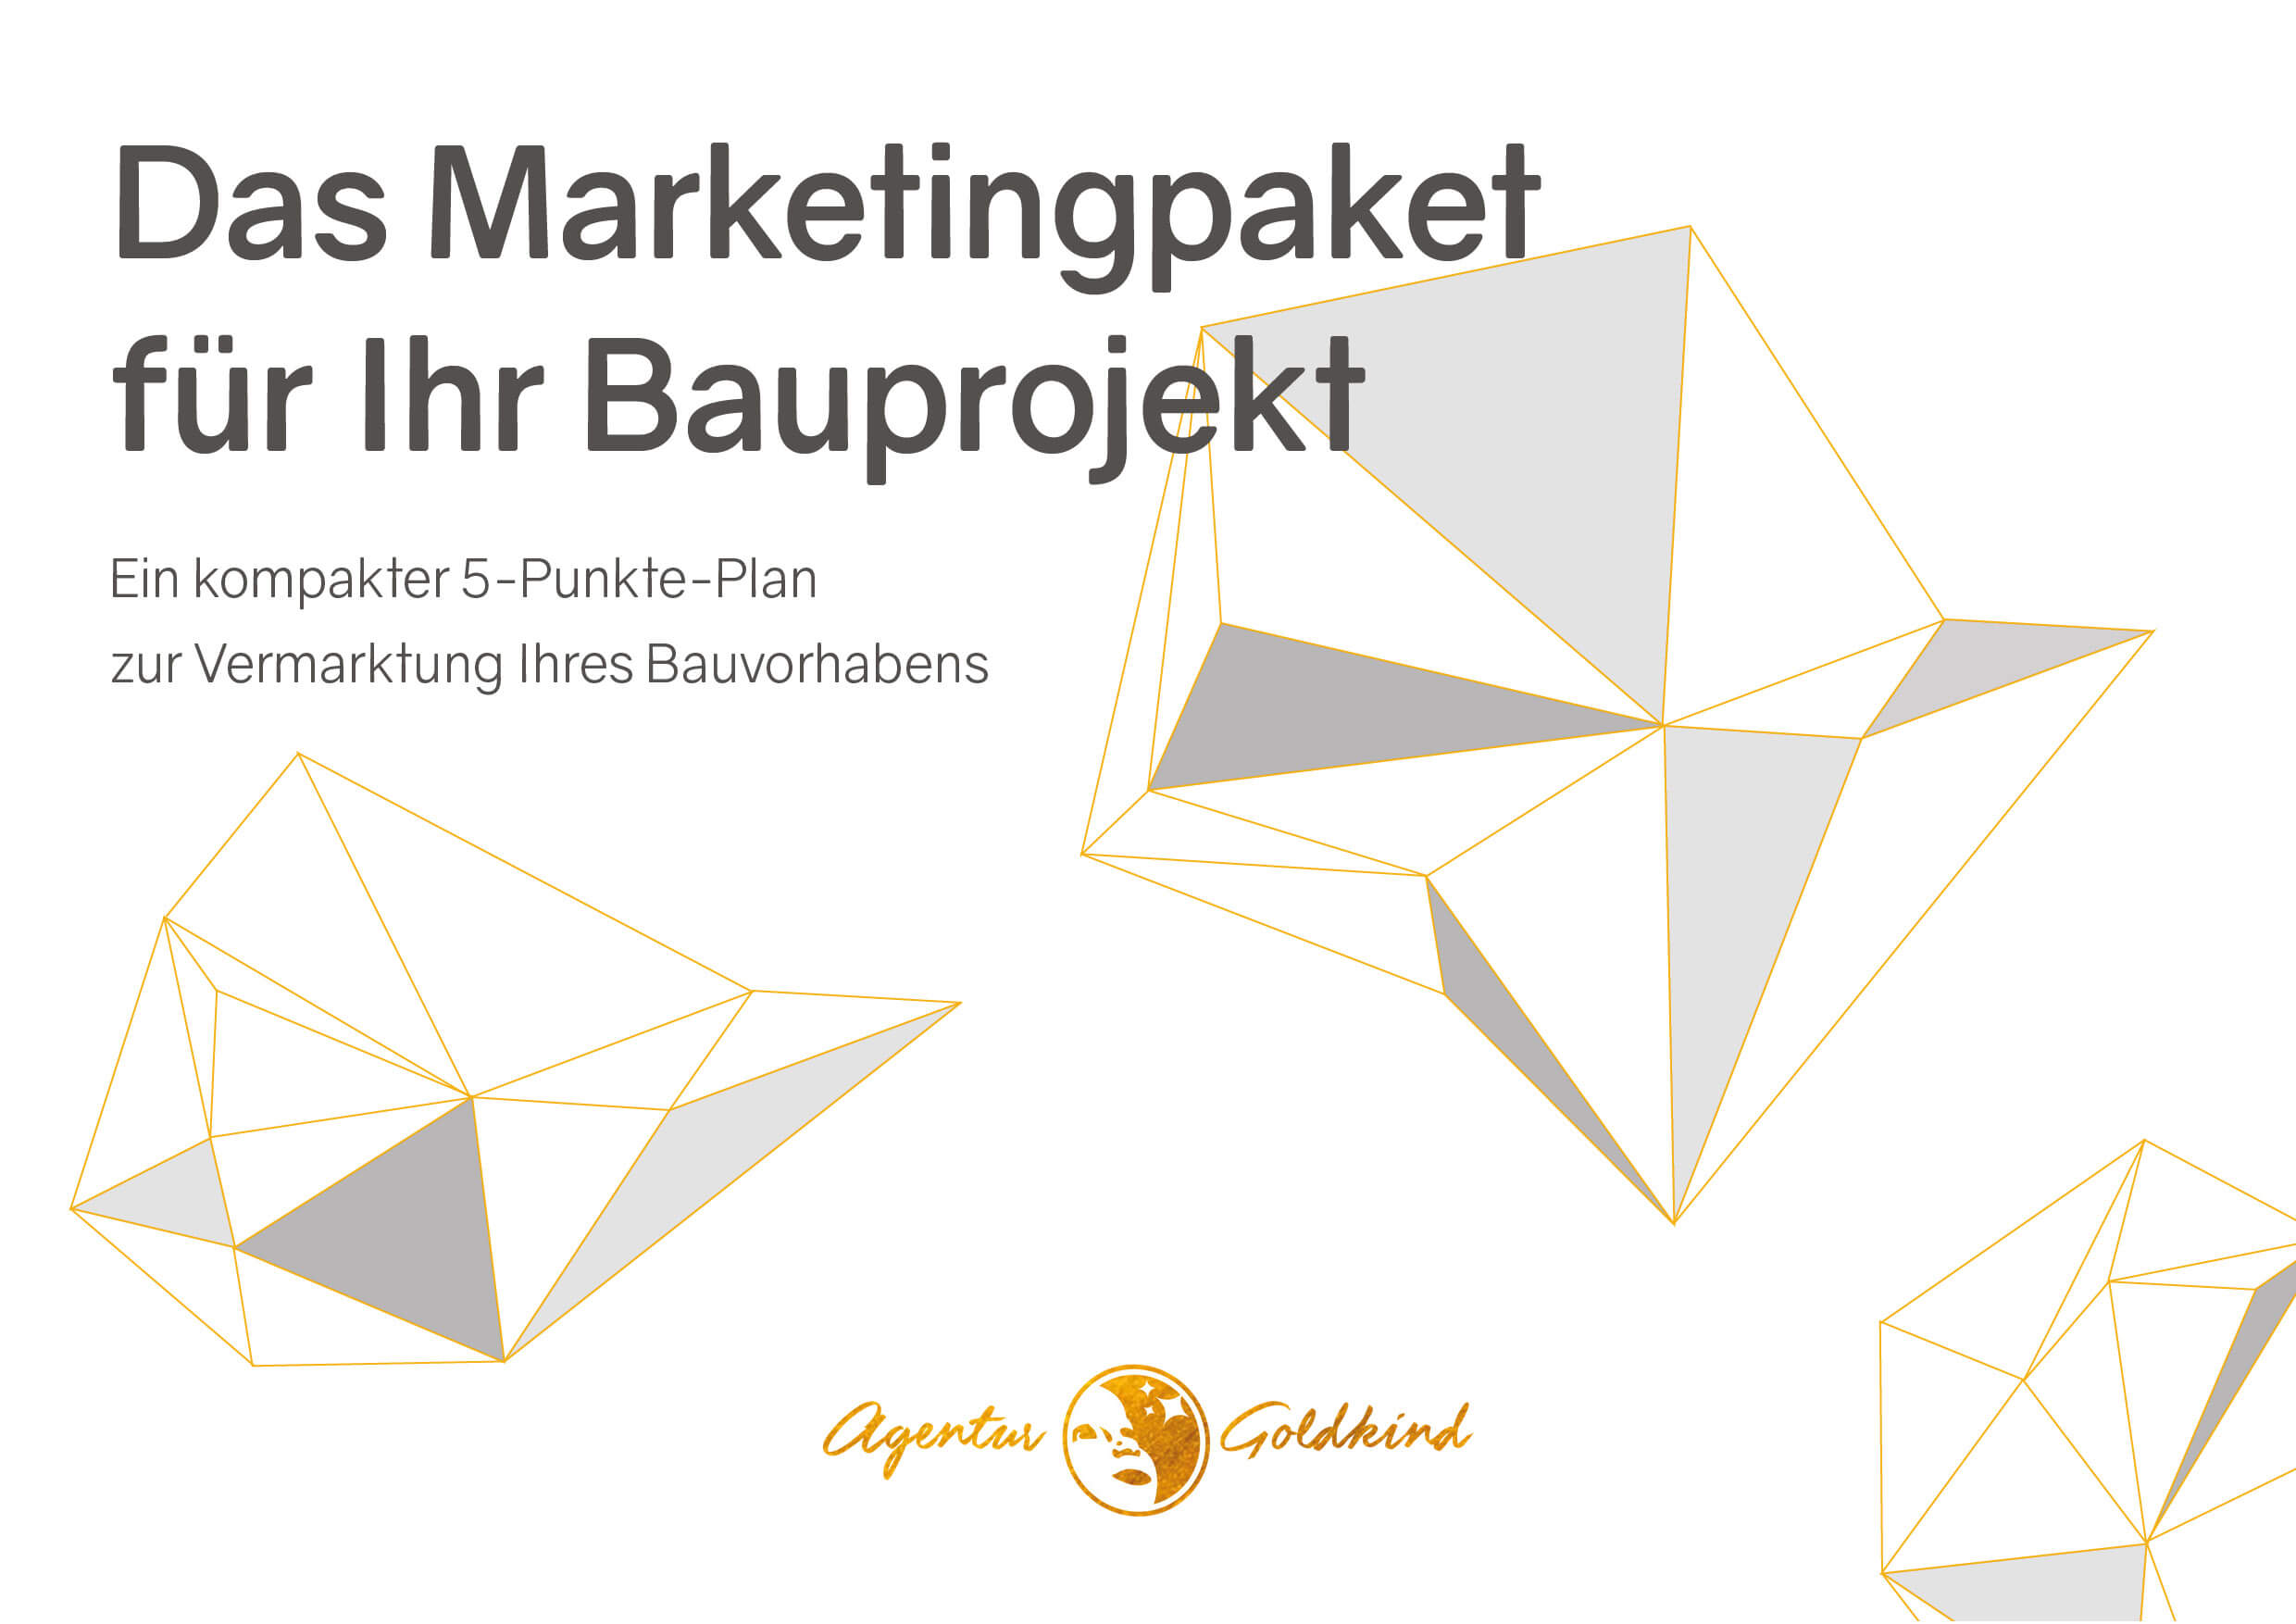 Agentur Goldkind Marketing Bauprojekt